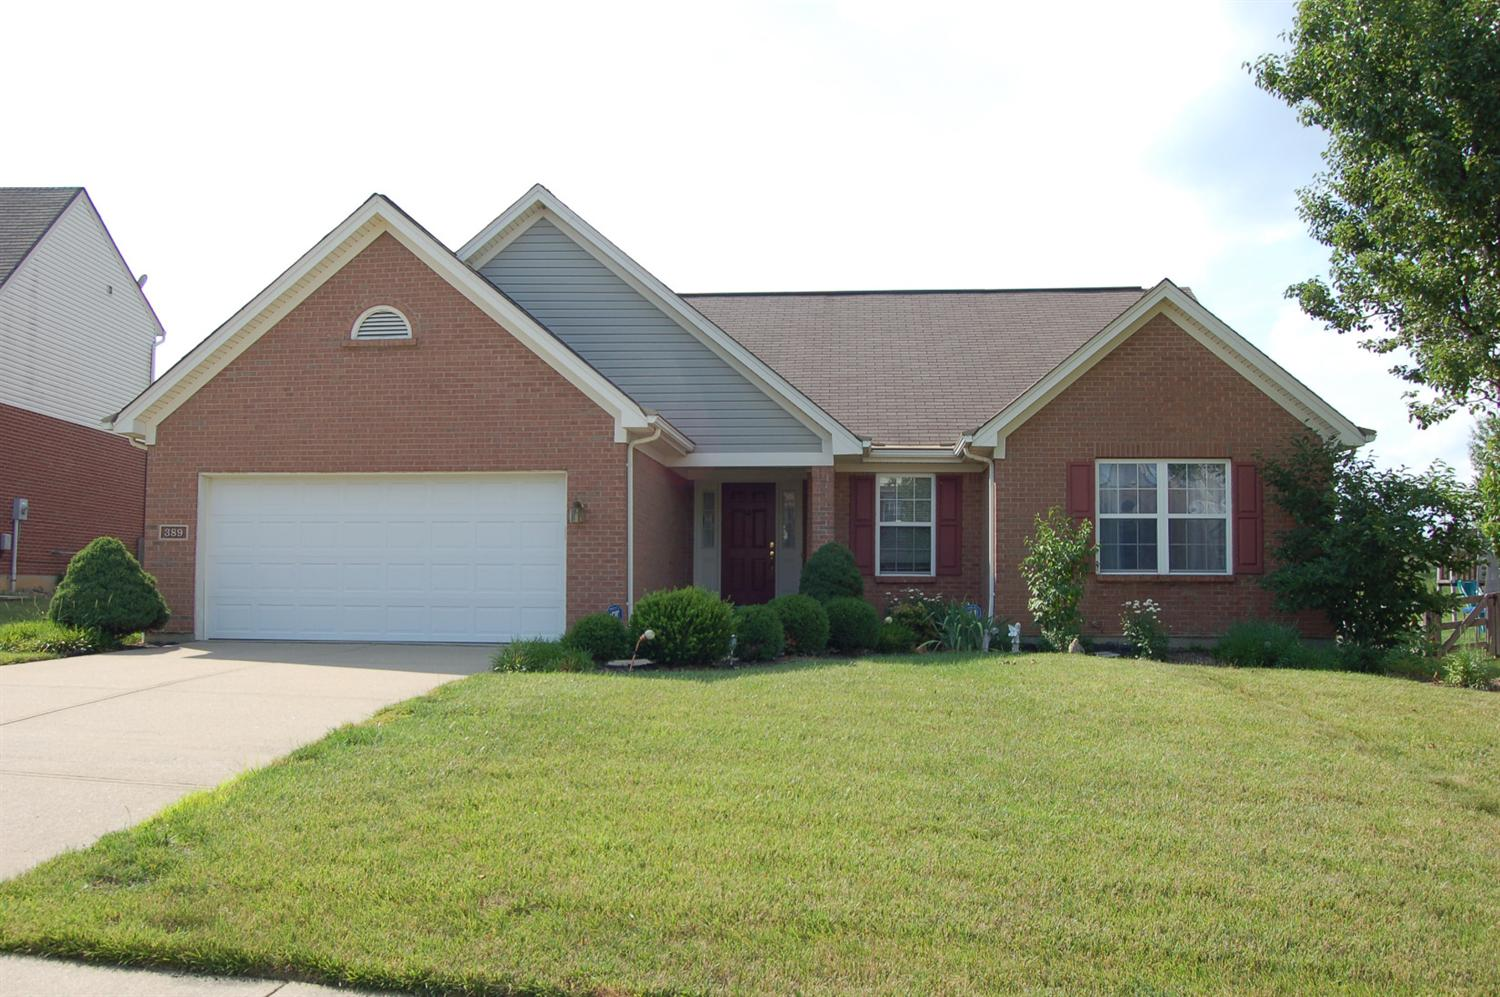 Photo 1 for 389 Wexford Dr Walton, KY 41094